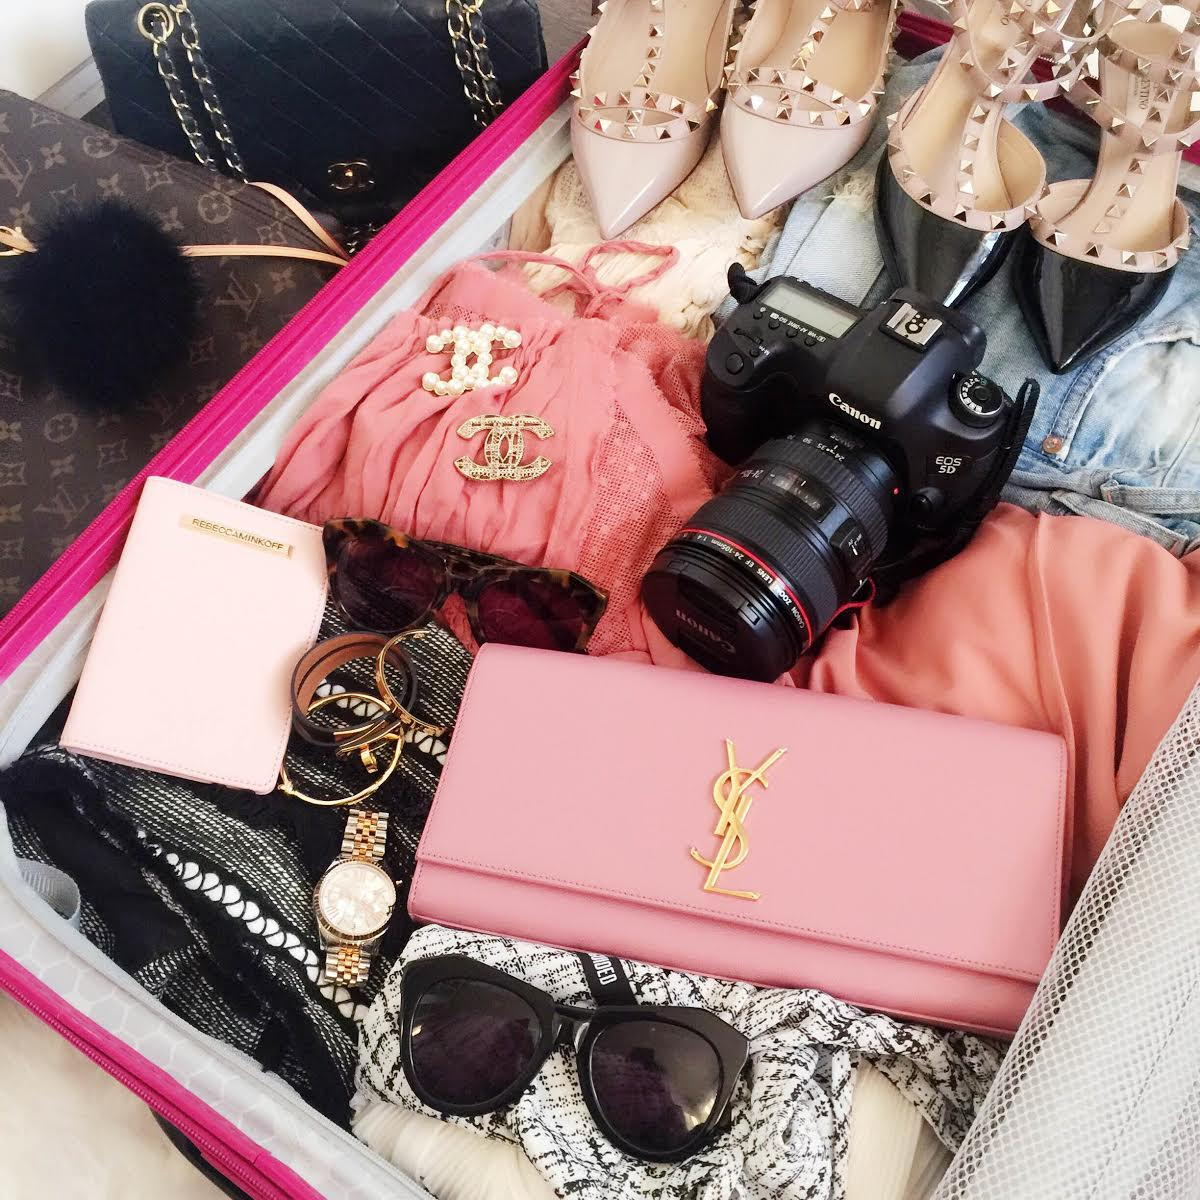 packing-bags-luggage-travel-style-fashion